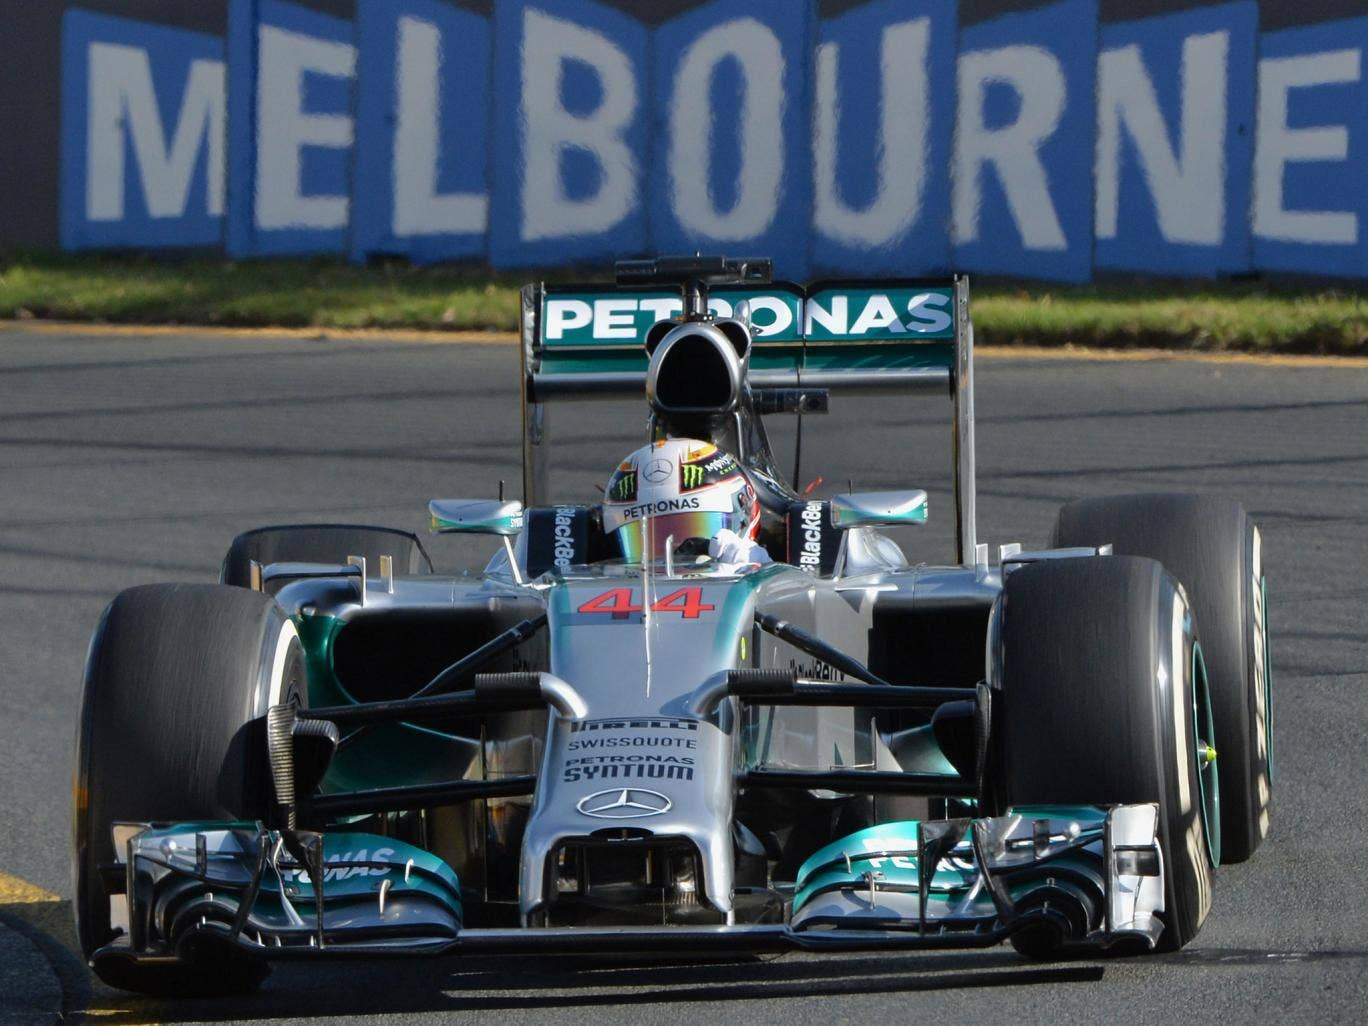 Mercedes driver Lewis Hamilton of Britain powers through a corner during the second practice session of the Australian Grand Prix in Melbourne